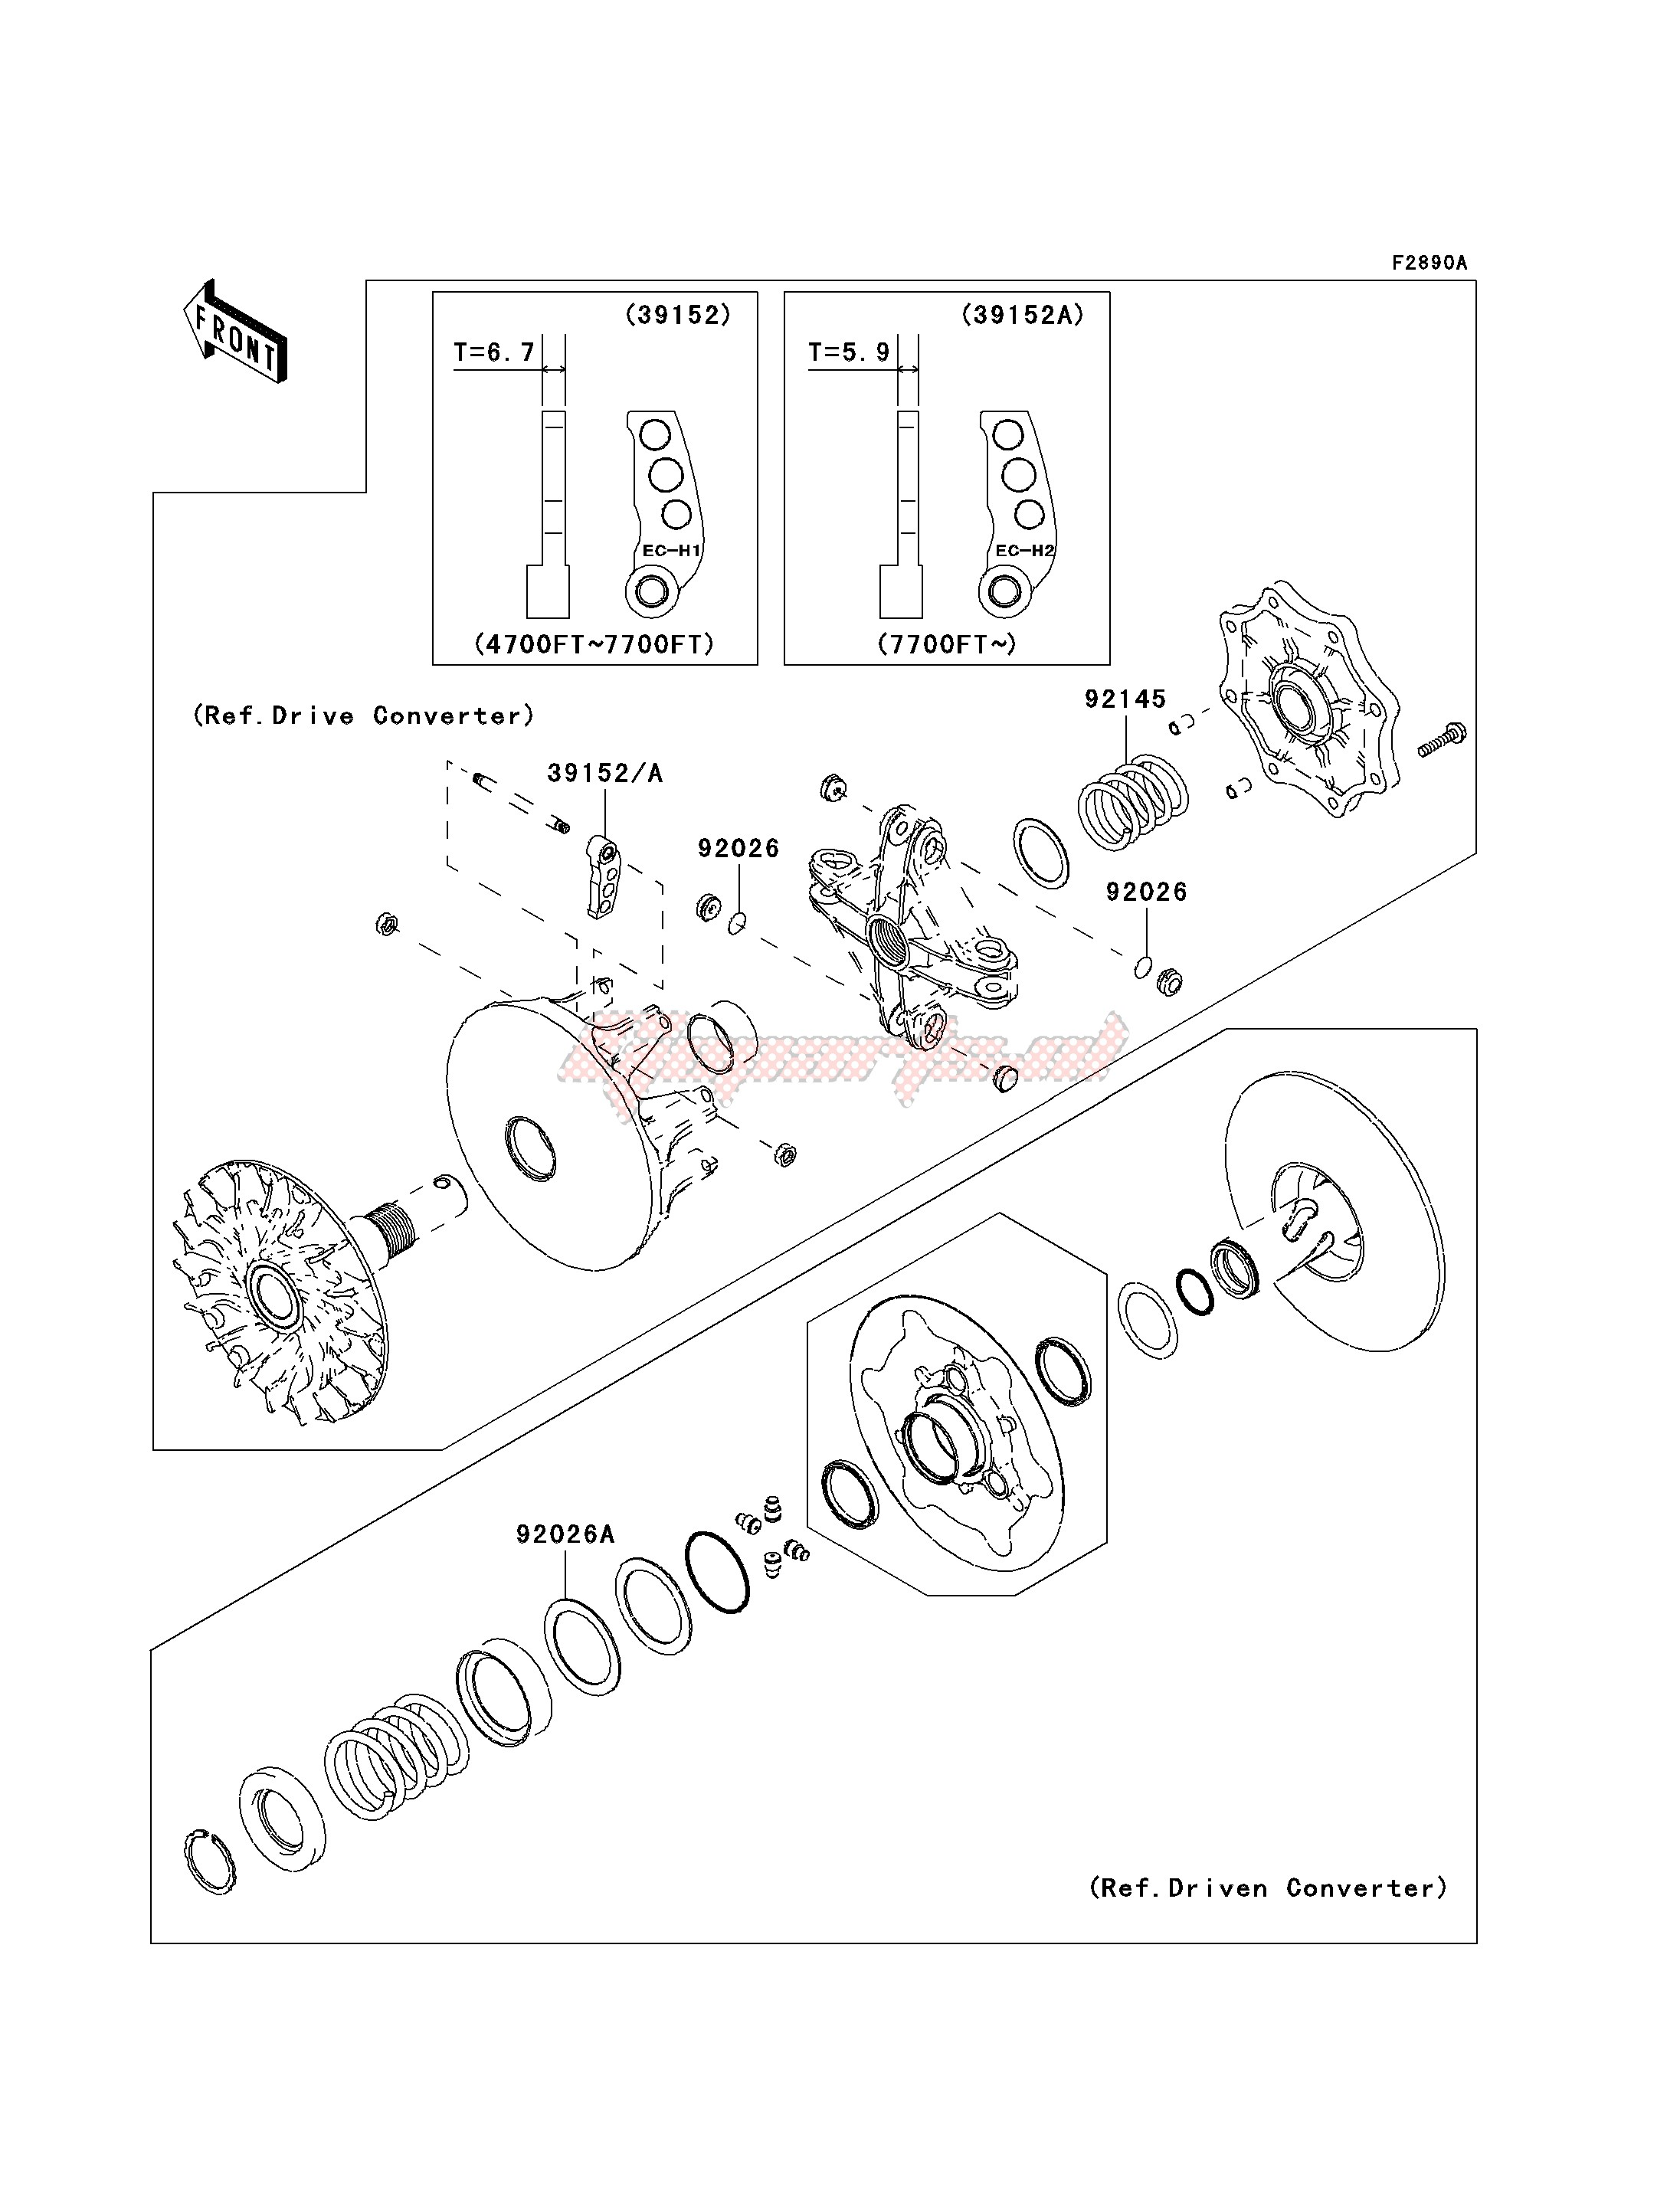 Accessories-OPTIONAL PARTS-- CONVERTER- -